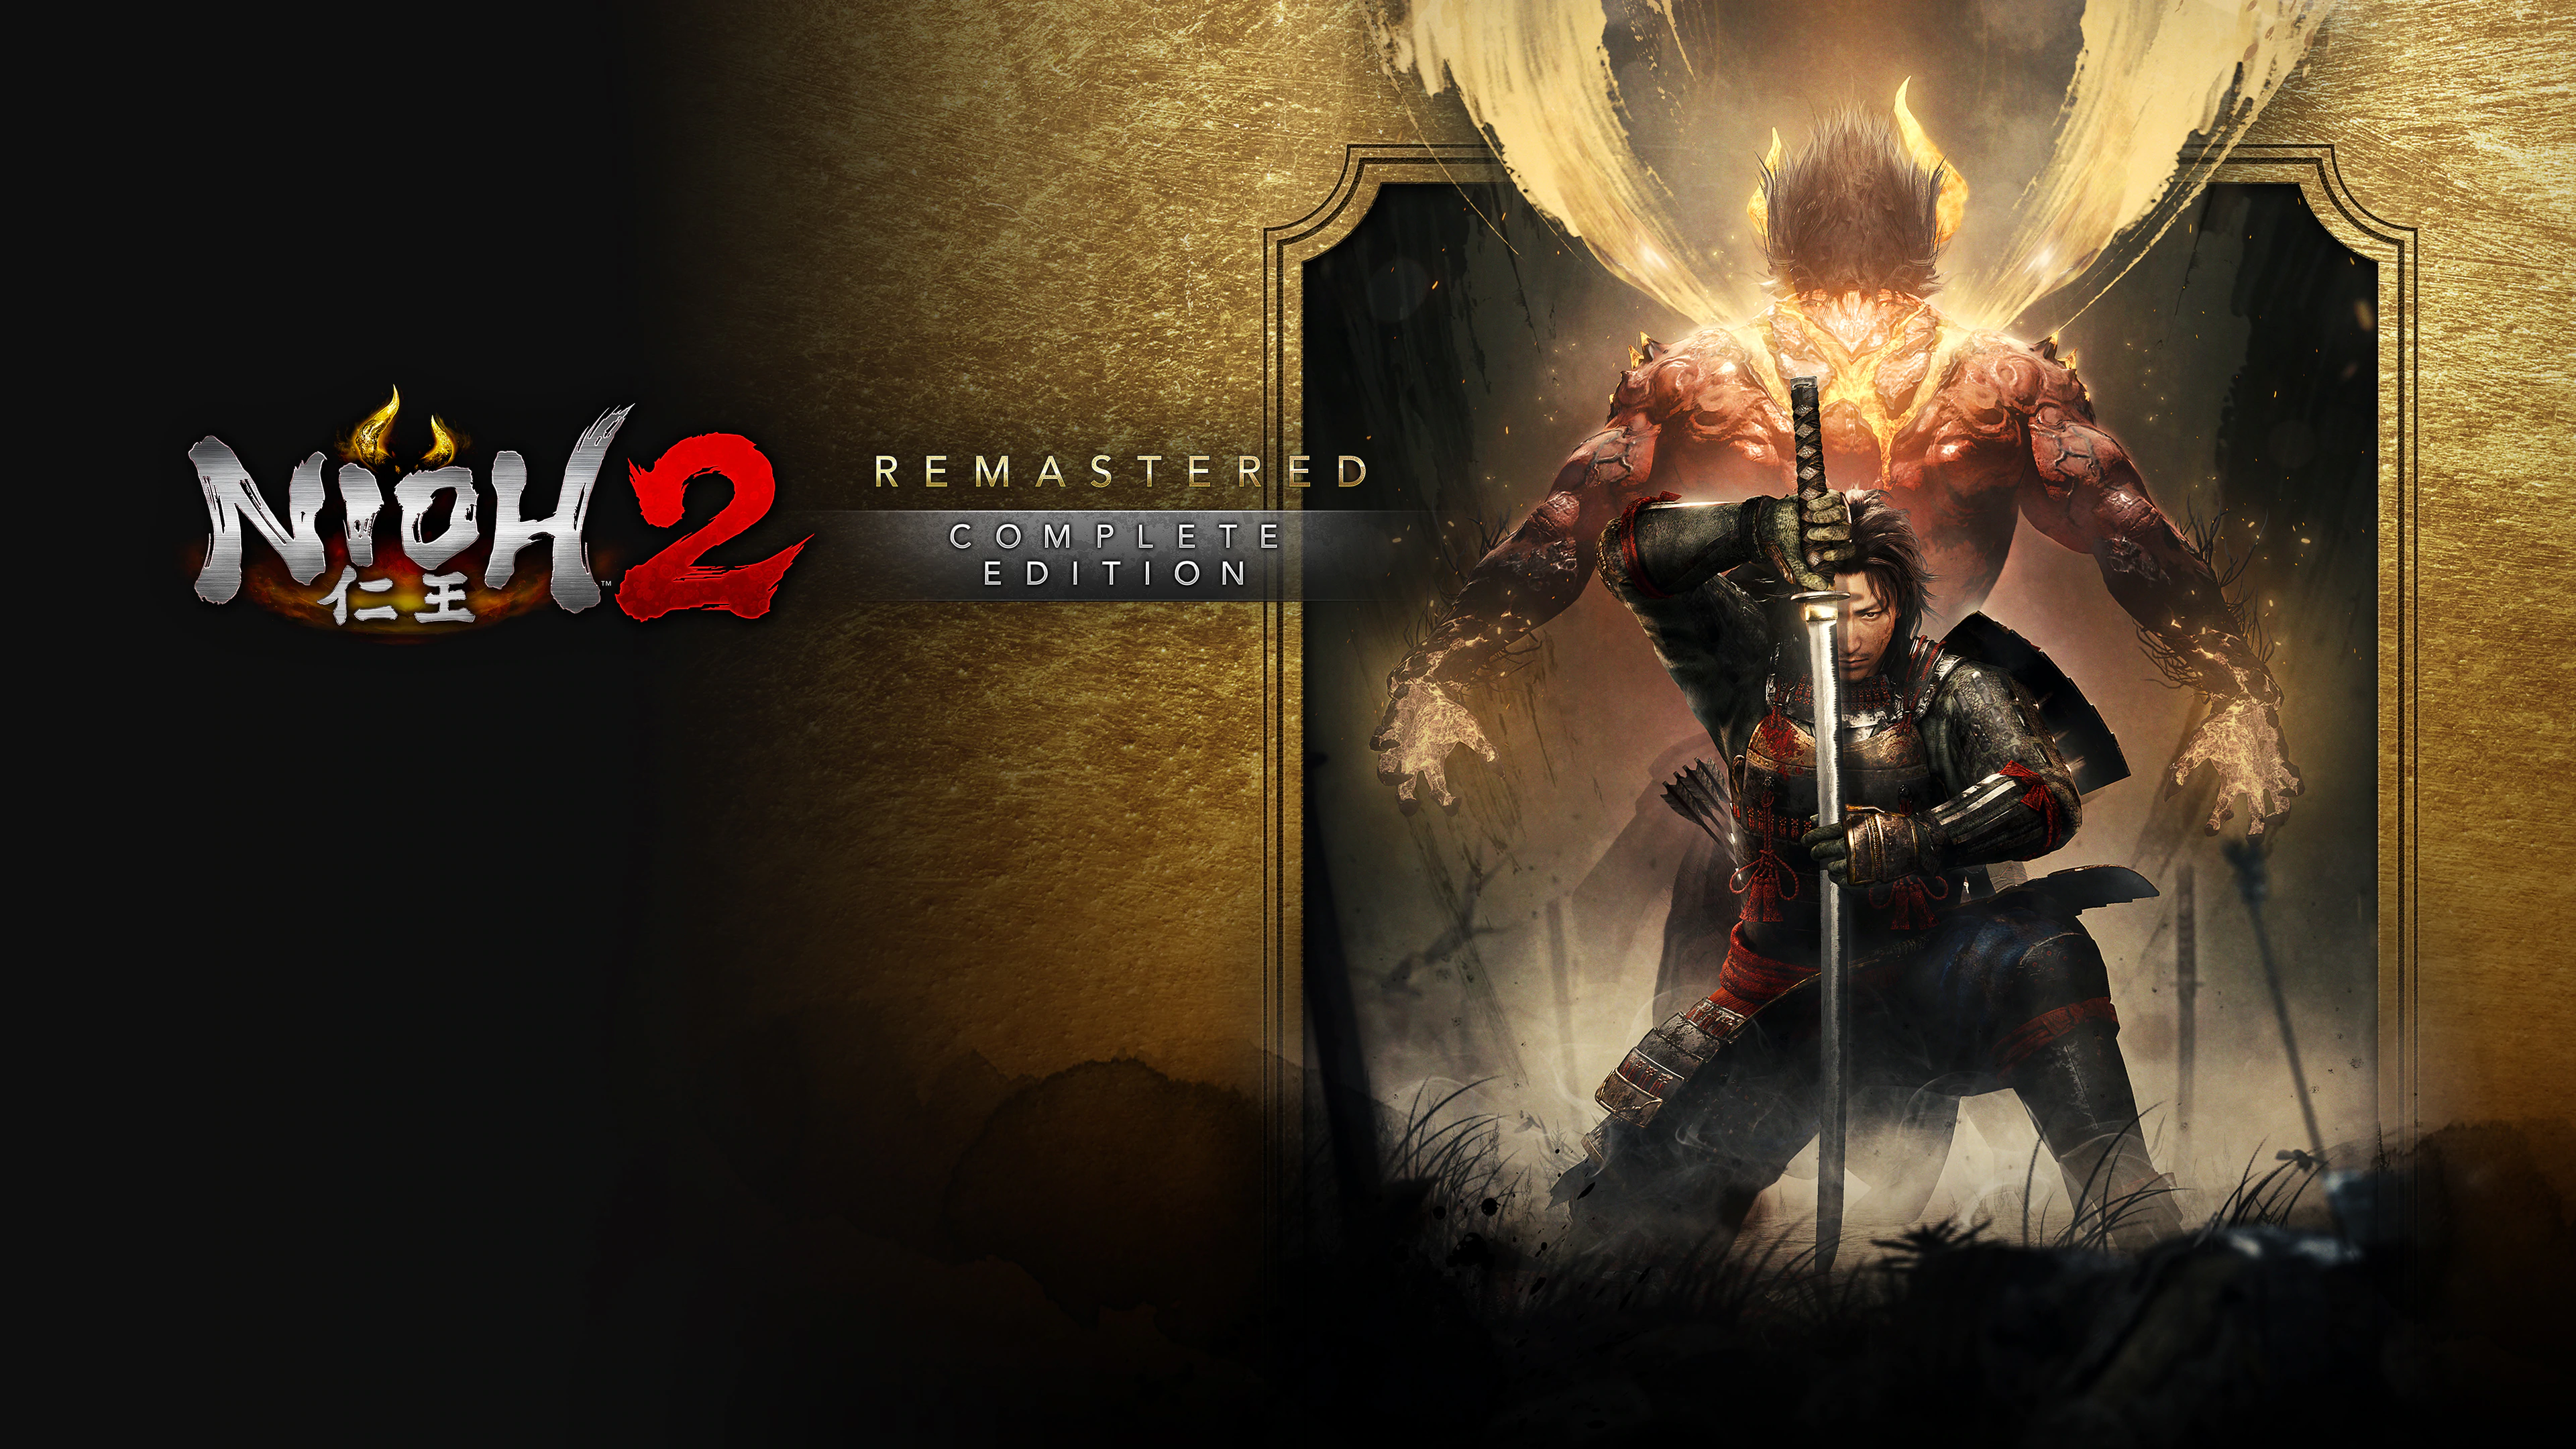 Nioh 2 Remastered Complete Edition Banner